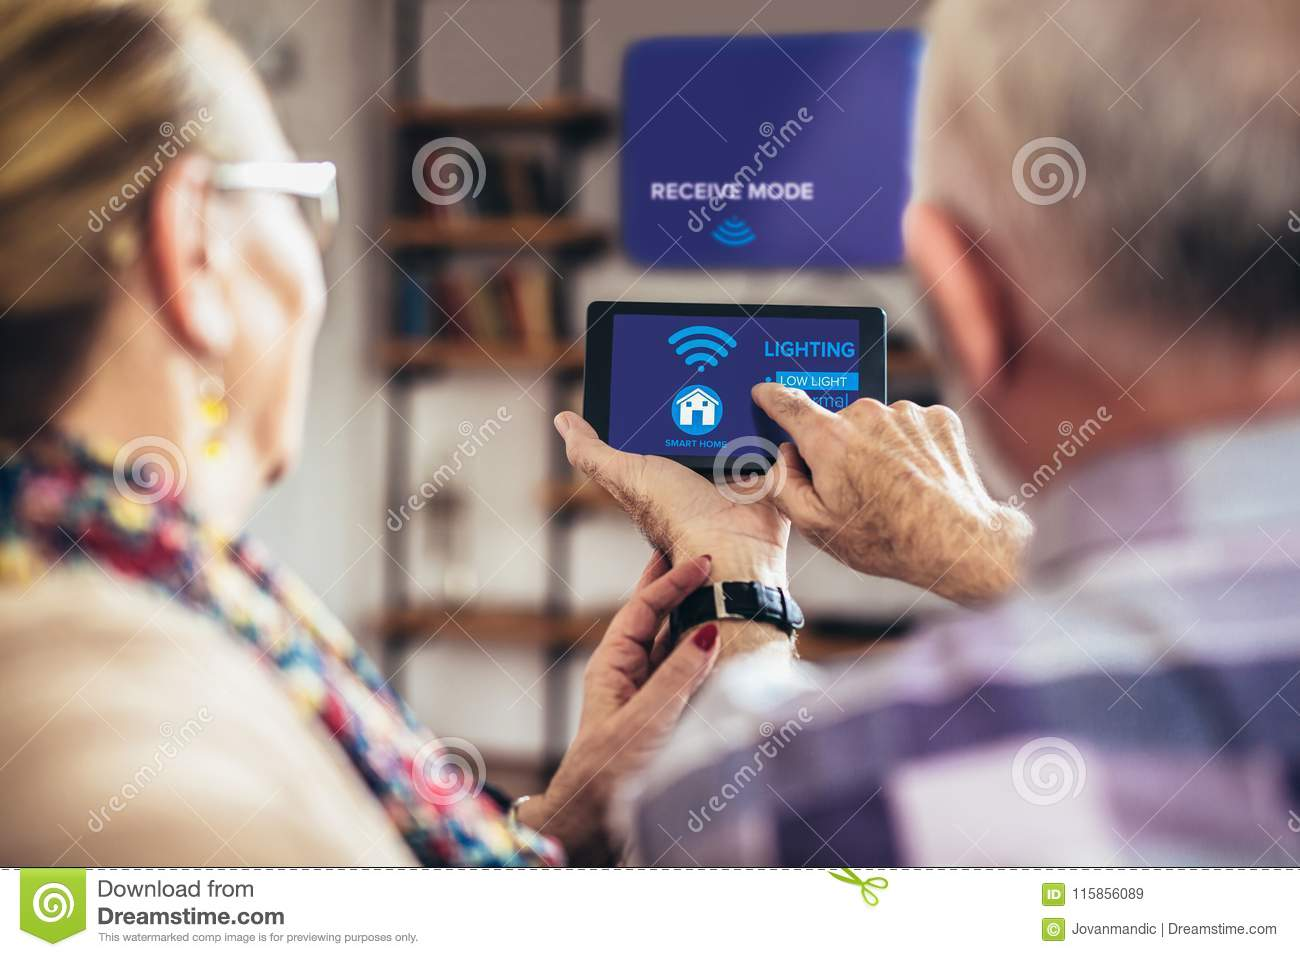 Elderly couple sitting comfortably on a sofa with their backs holiding remote control home system